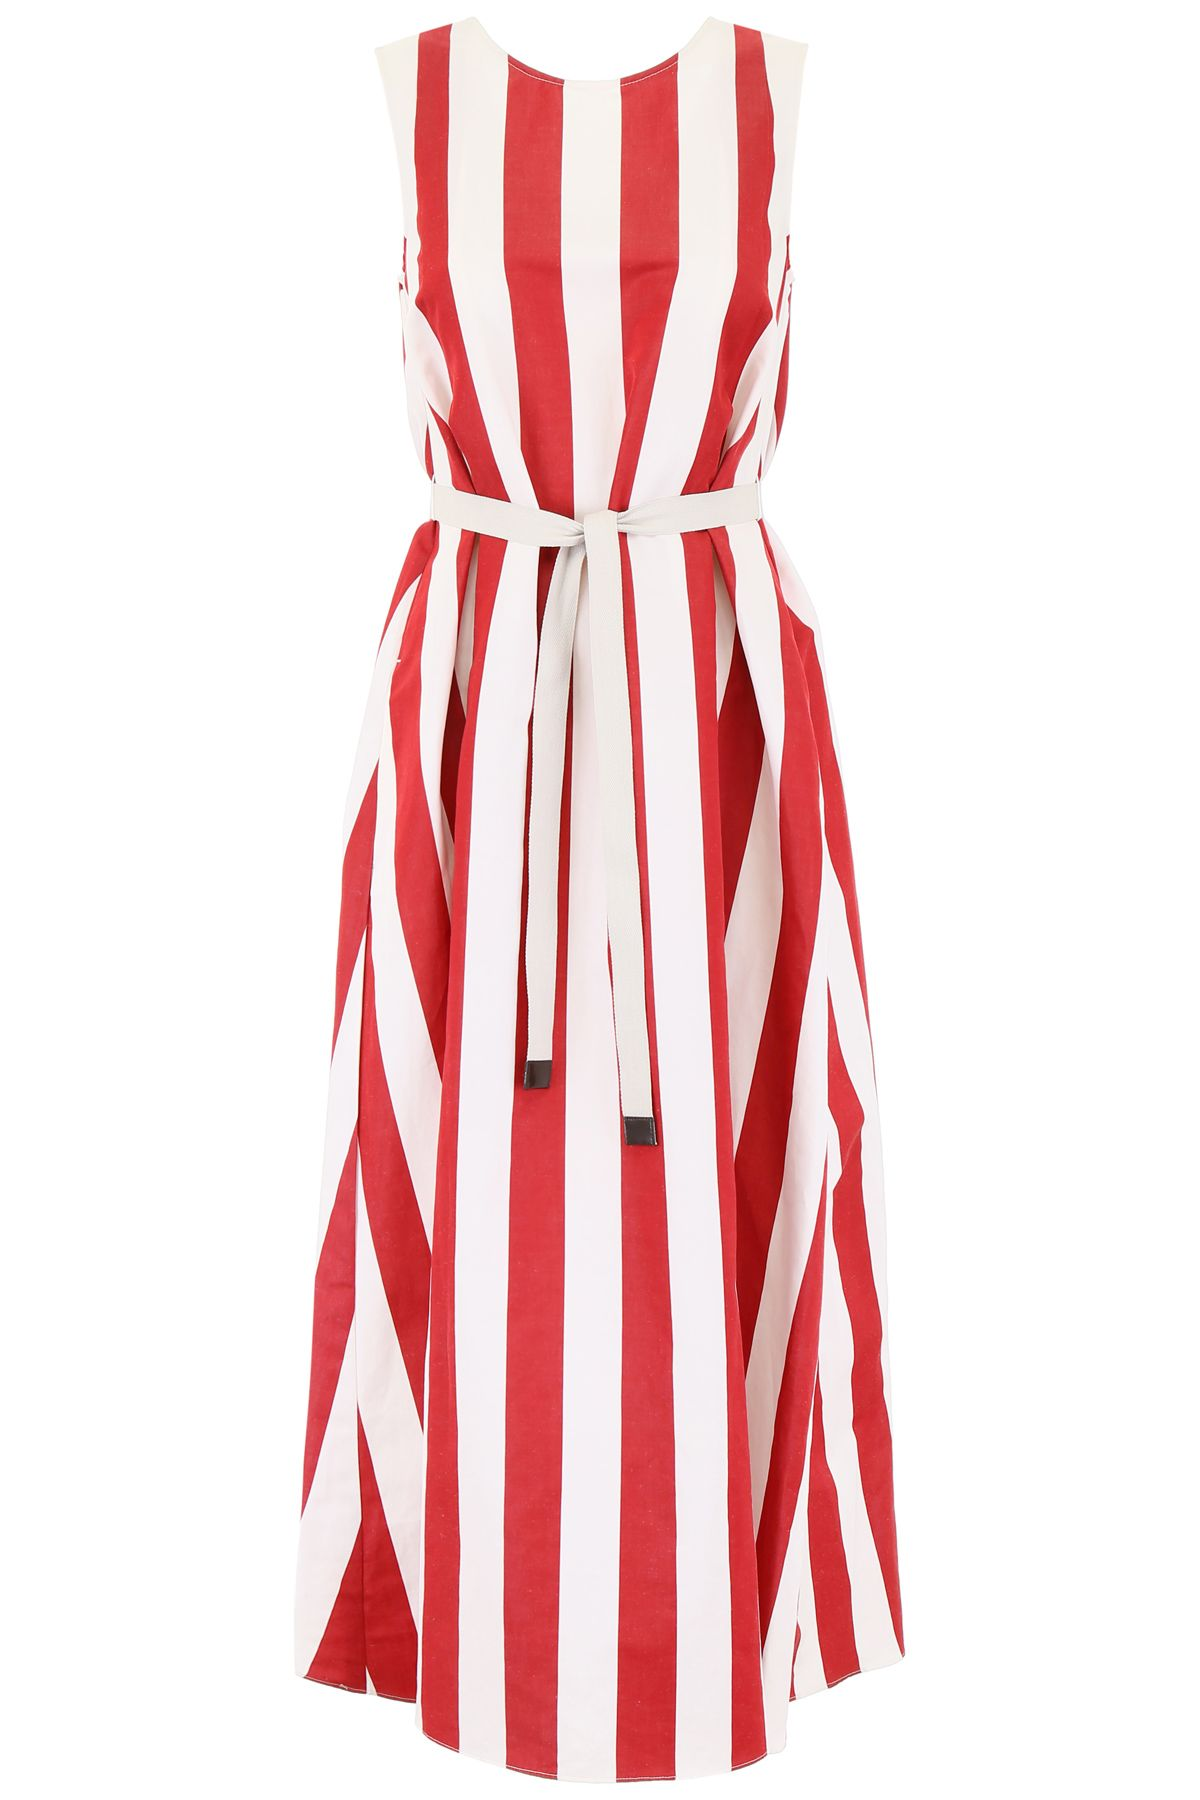 47cb45544fa Max Mara Studio Max Mara Studio Striped Boccale Dress - OFF WHITE ...